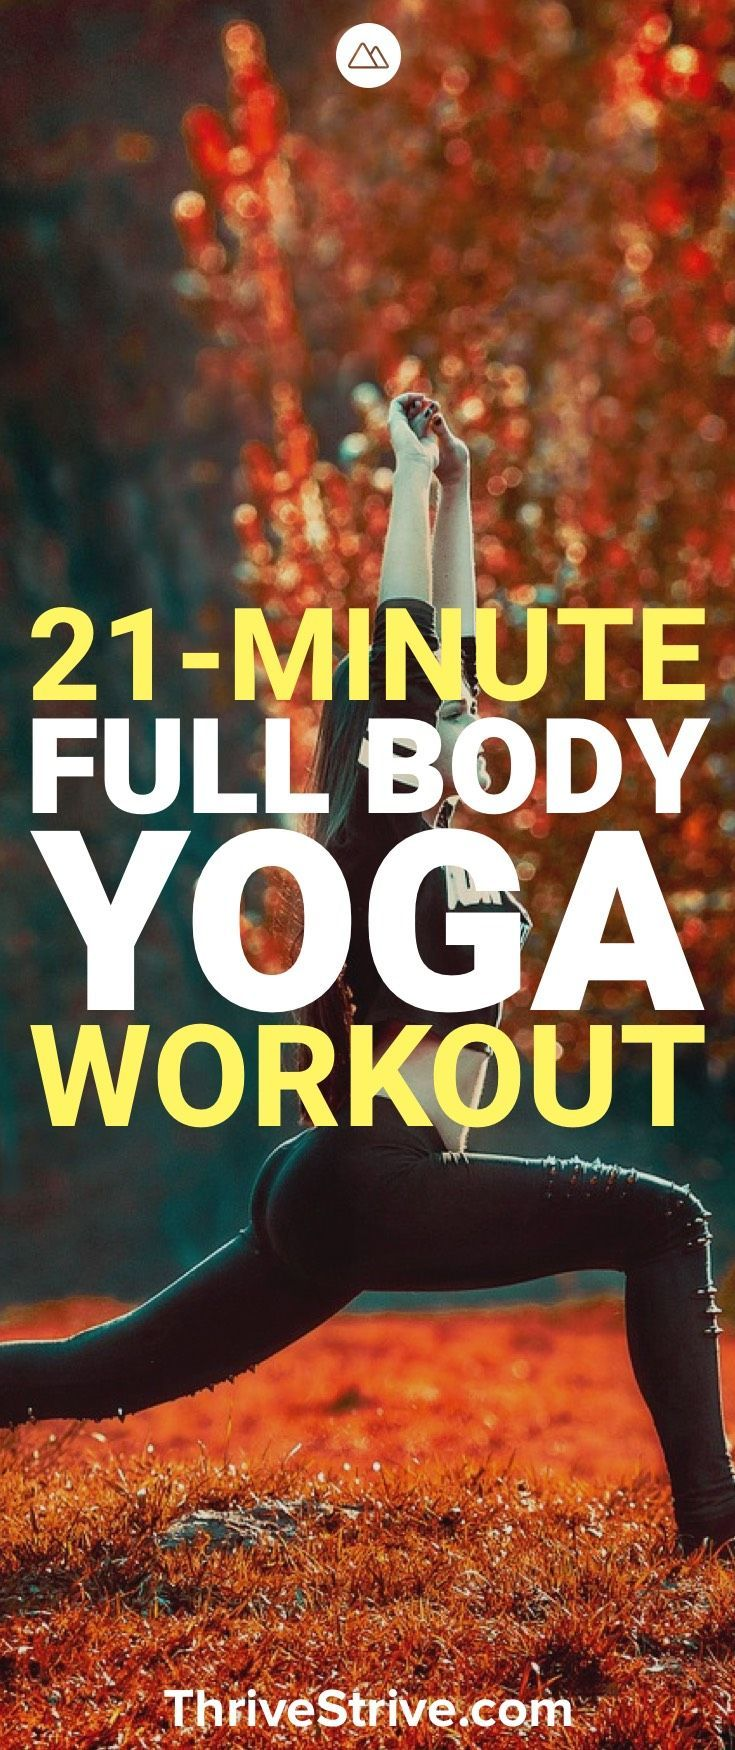 Here is a 21-minute full body workout that is great yoga for beginners. It is al...